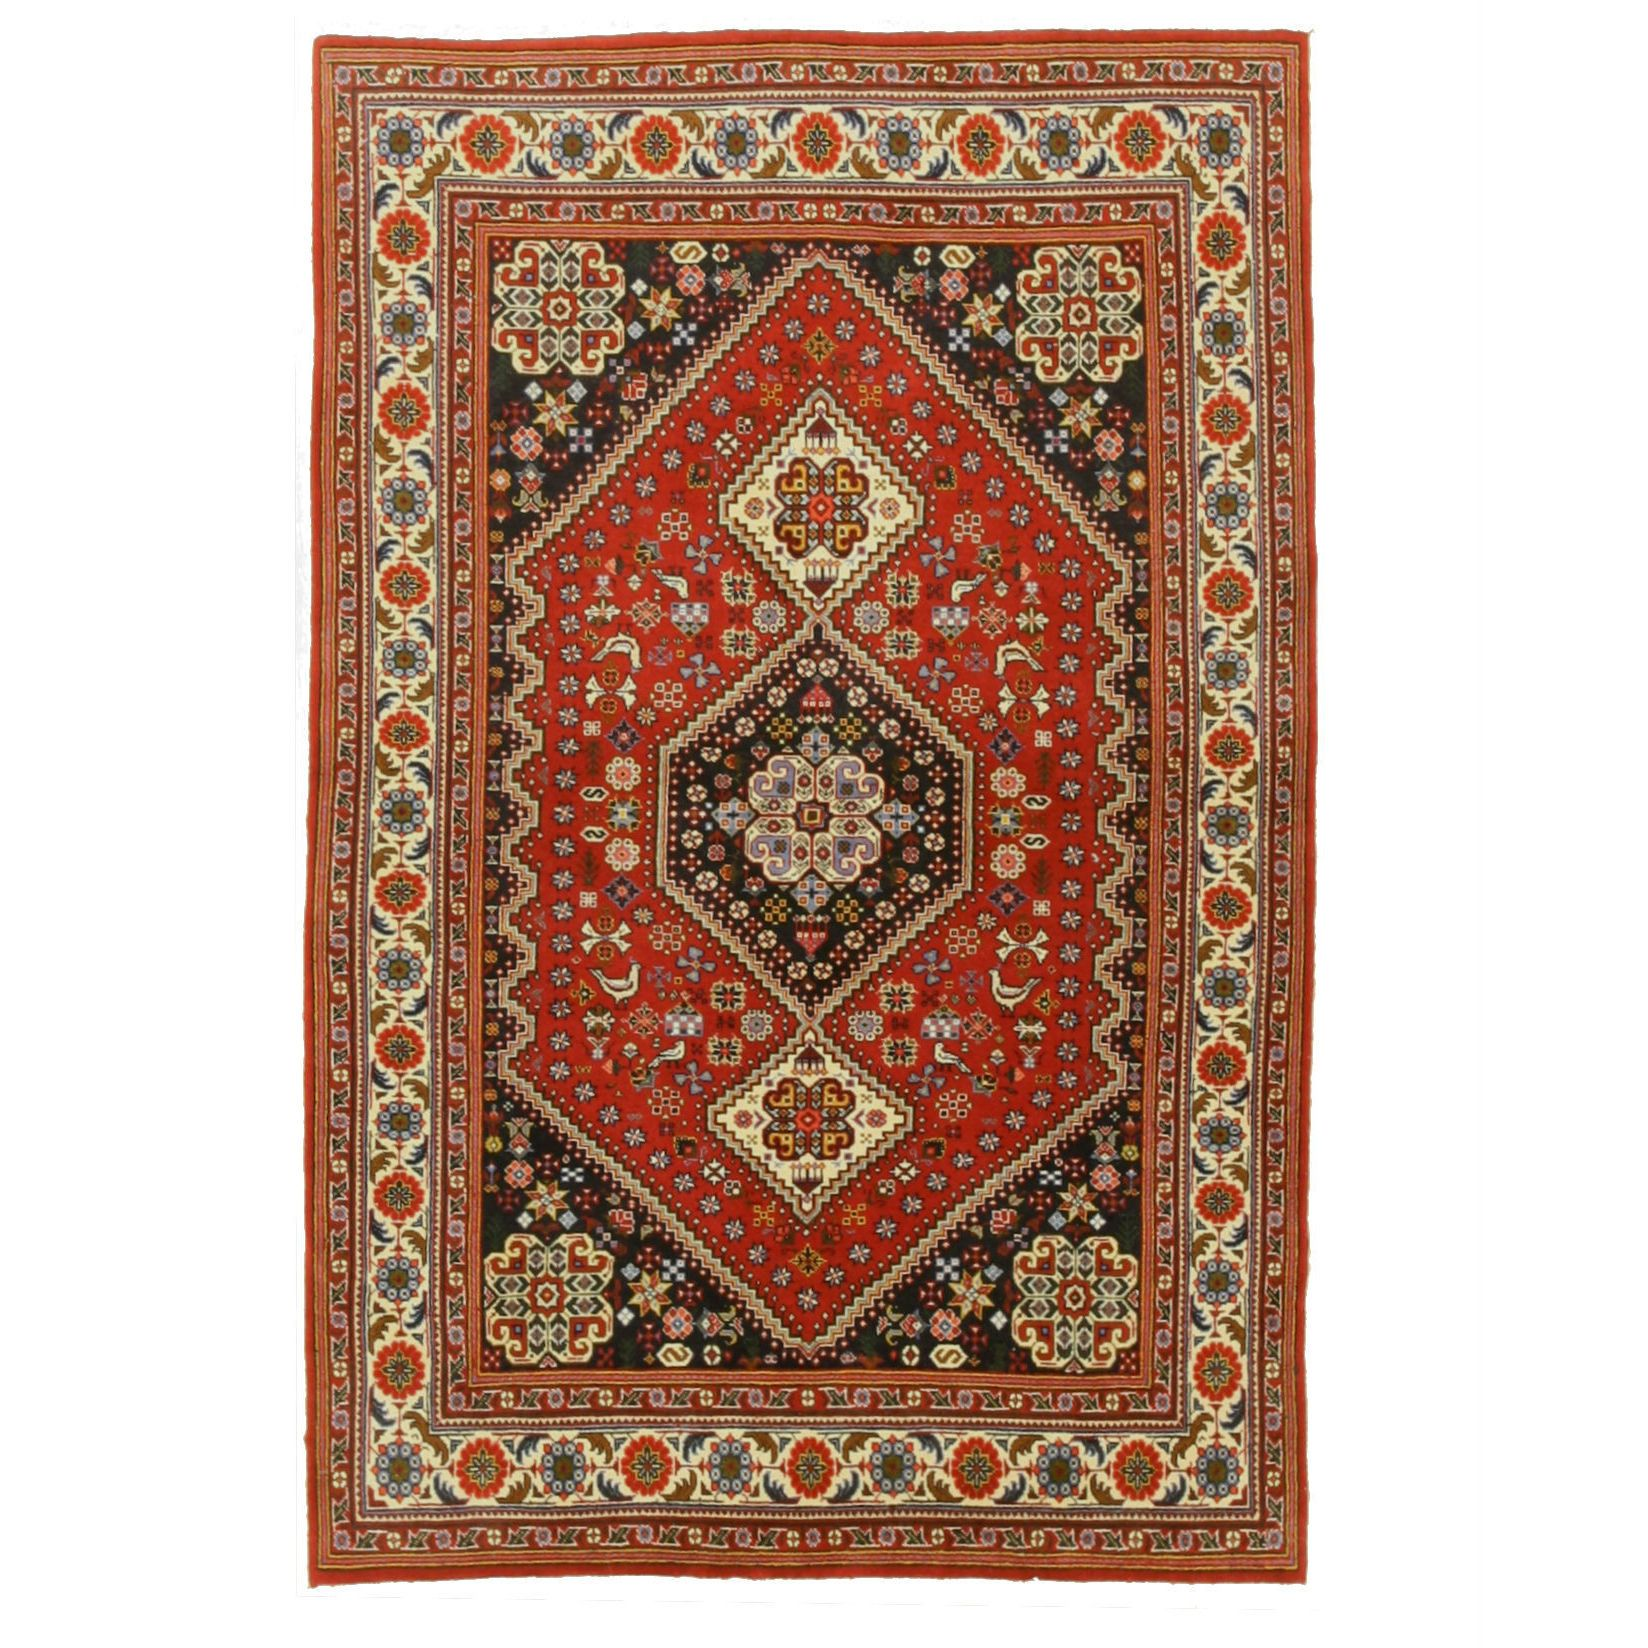 EORC Refurbished Eastern Oriental Rug Center Hand Knotted Wool Red Abadeh Rug (4'1 x 6'5) (4'1 x 6'5), Size 4' x 6'